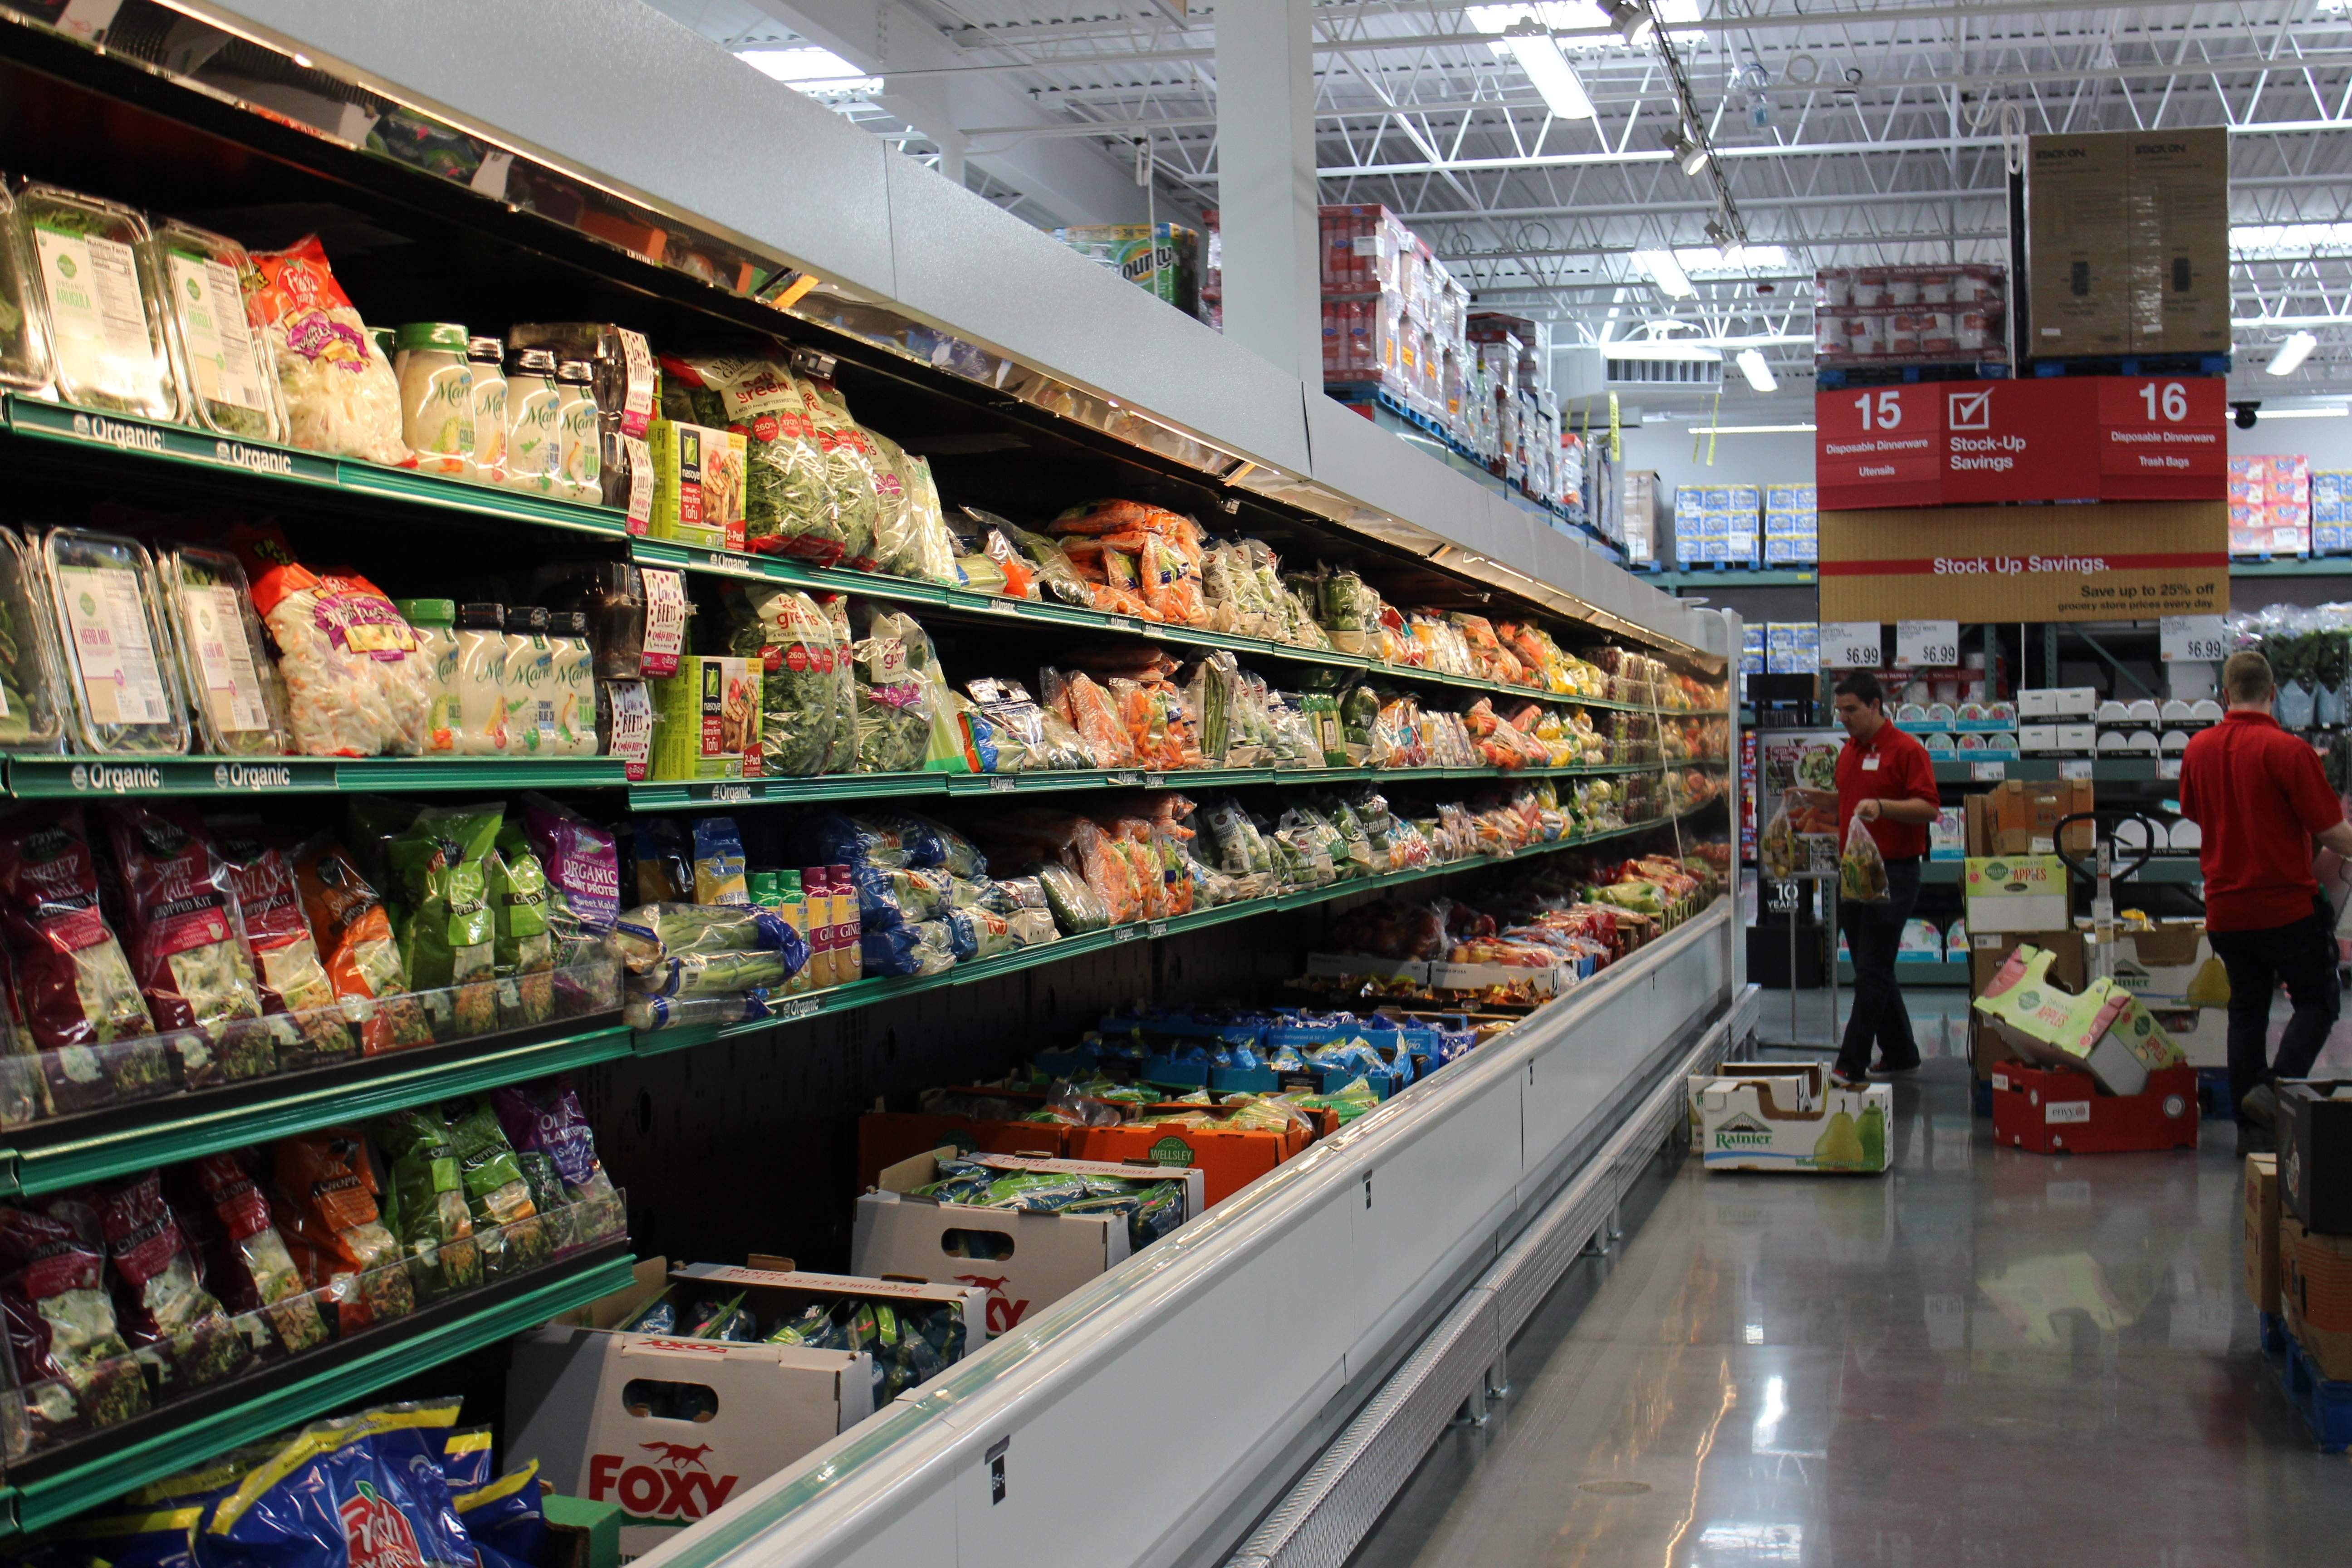 BJ's Wholesale Club is about to make its Pinellas County debut